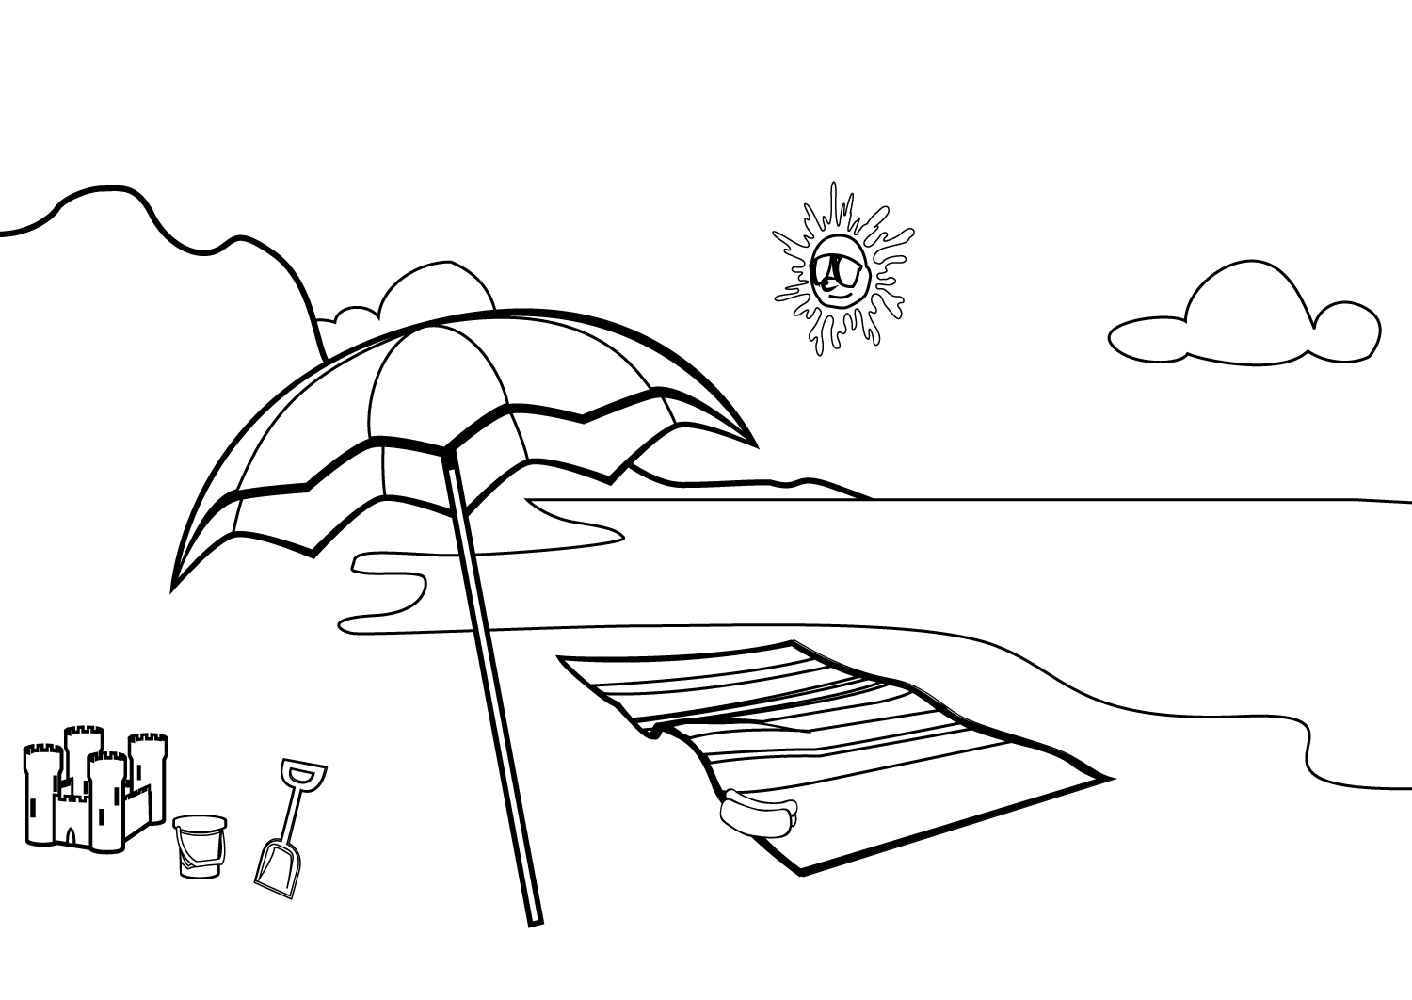 colouring pages of beach scene beach coloring pages beach scenes activities scene colouring of pages beach